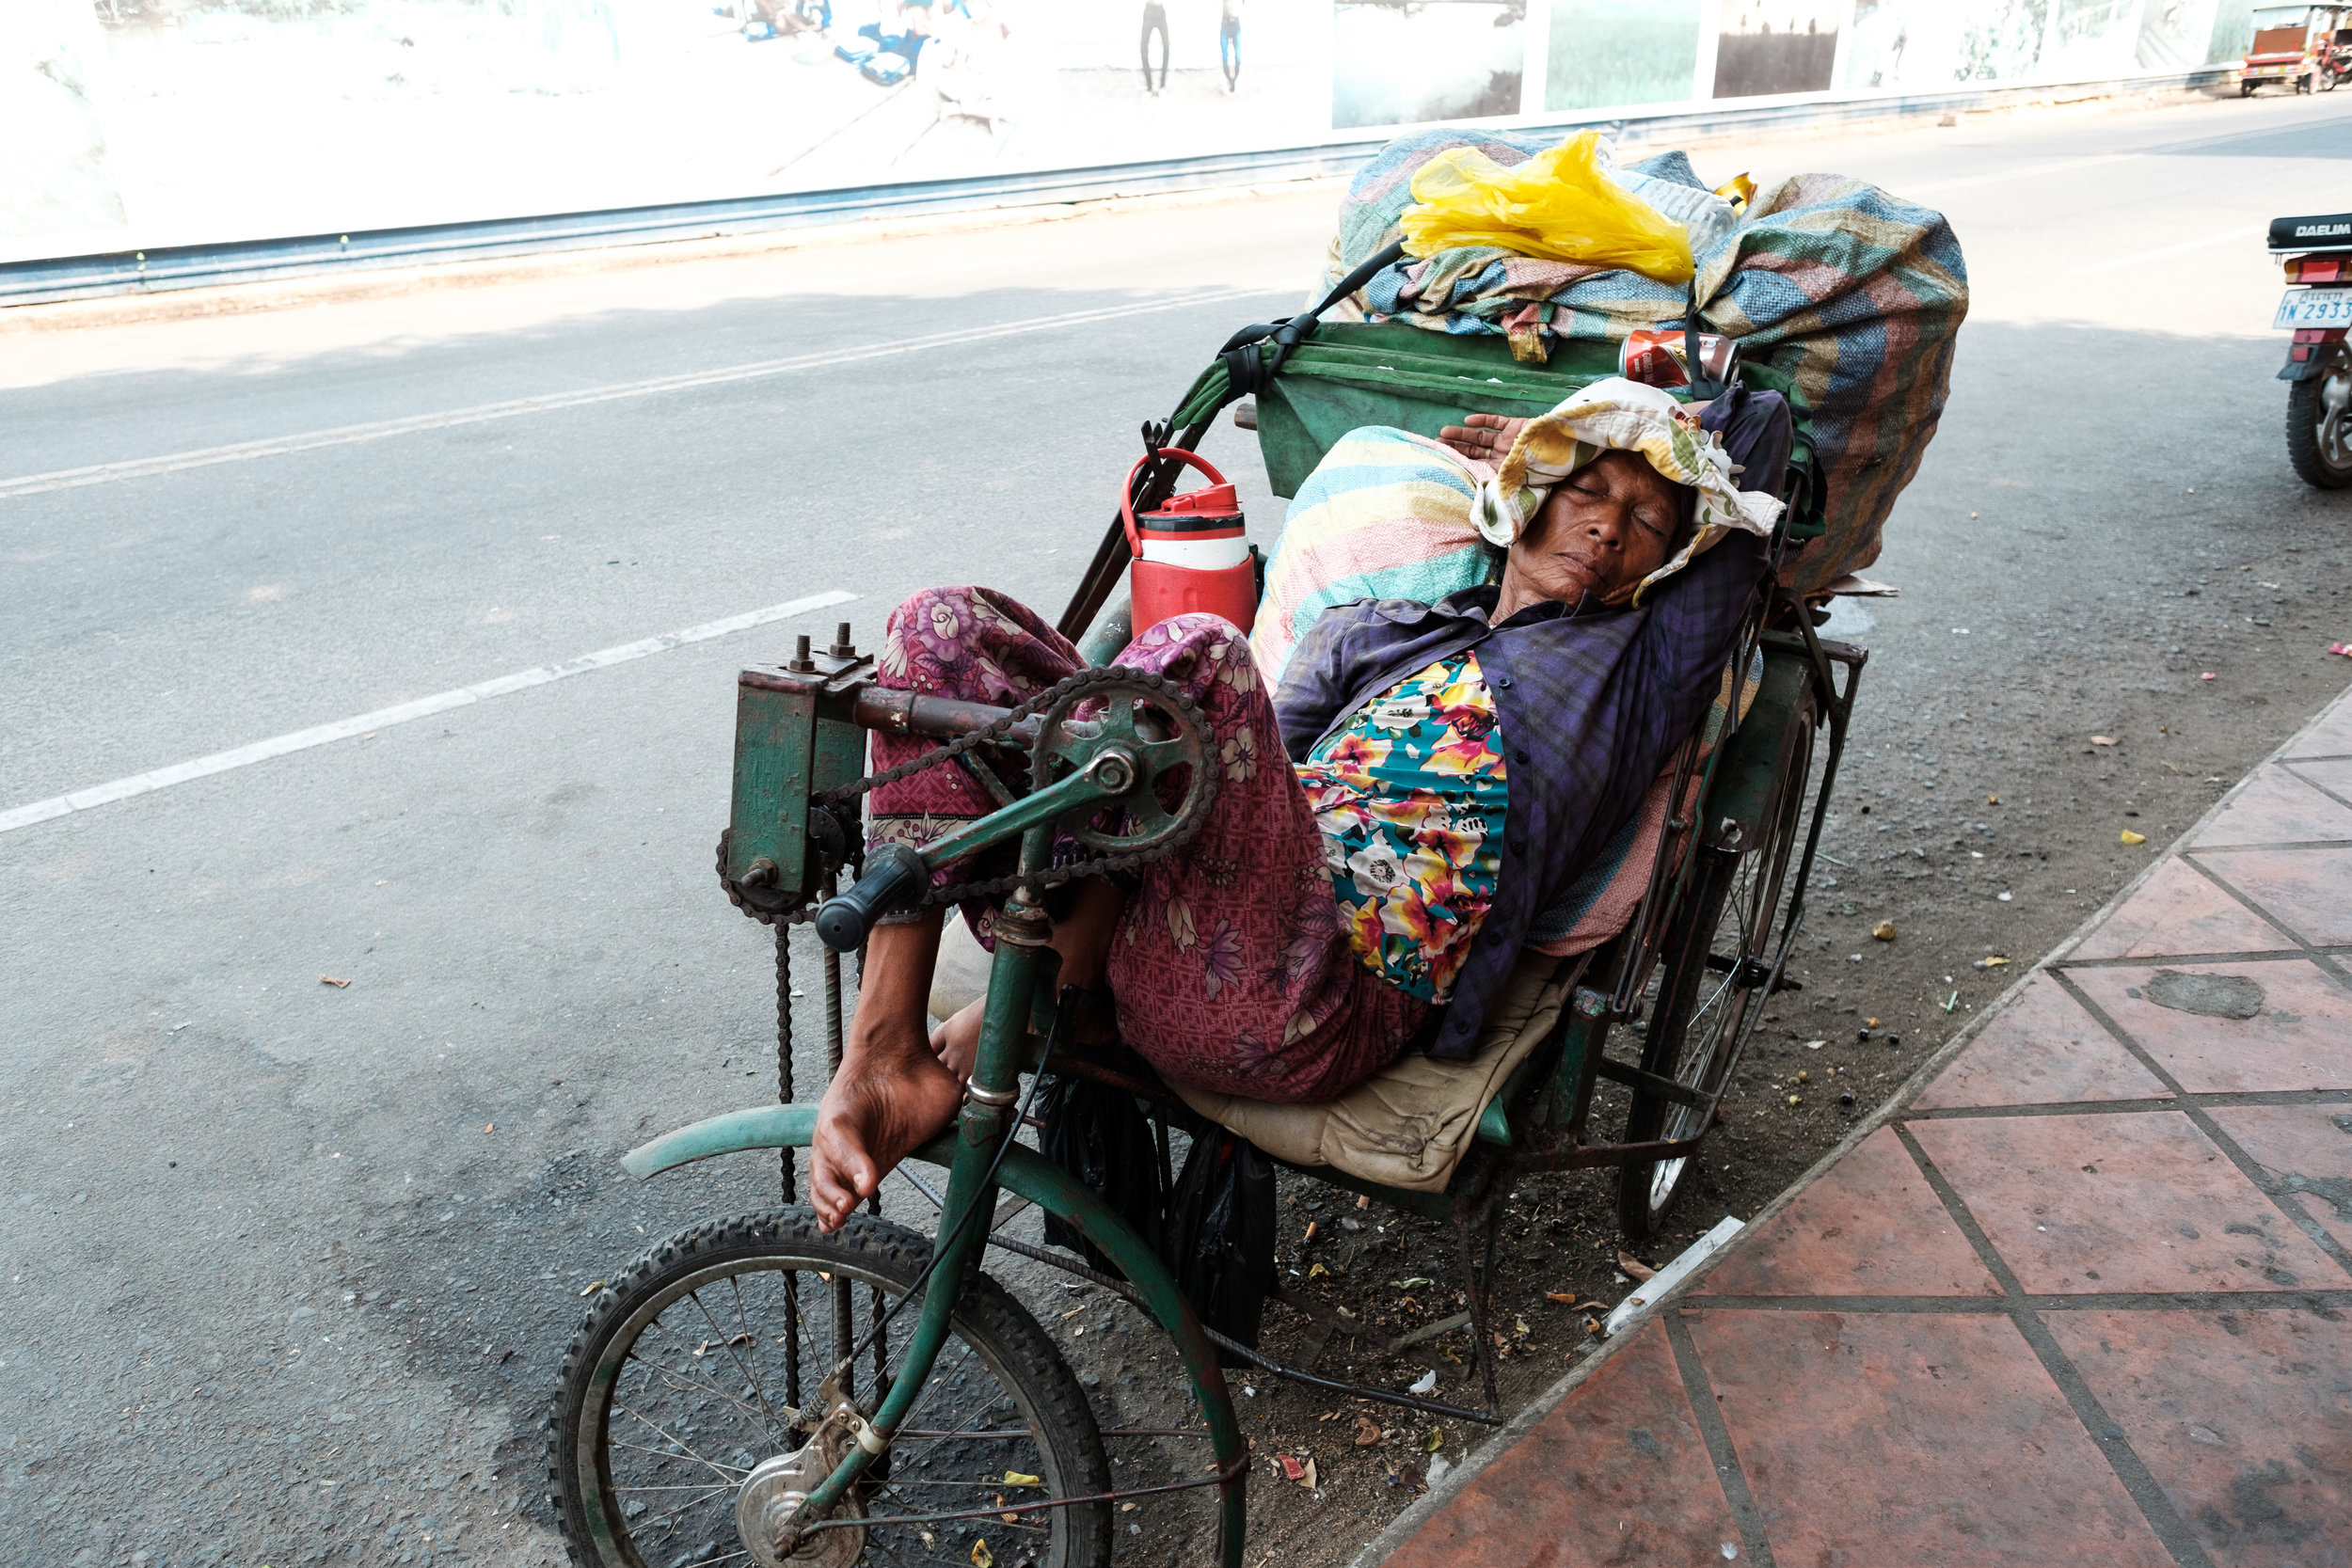 A elderly woman is having a nap on her rick shaw during the mid day heat in Phnom Penh Cambodia